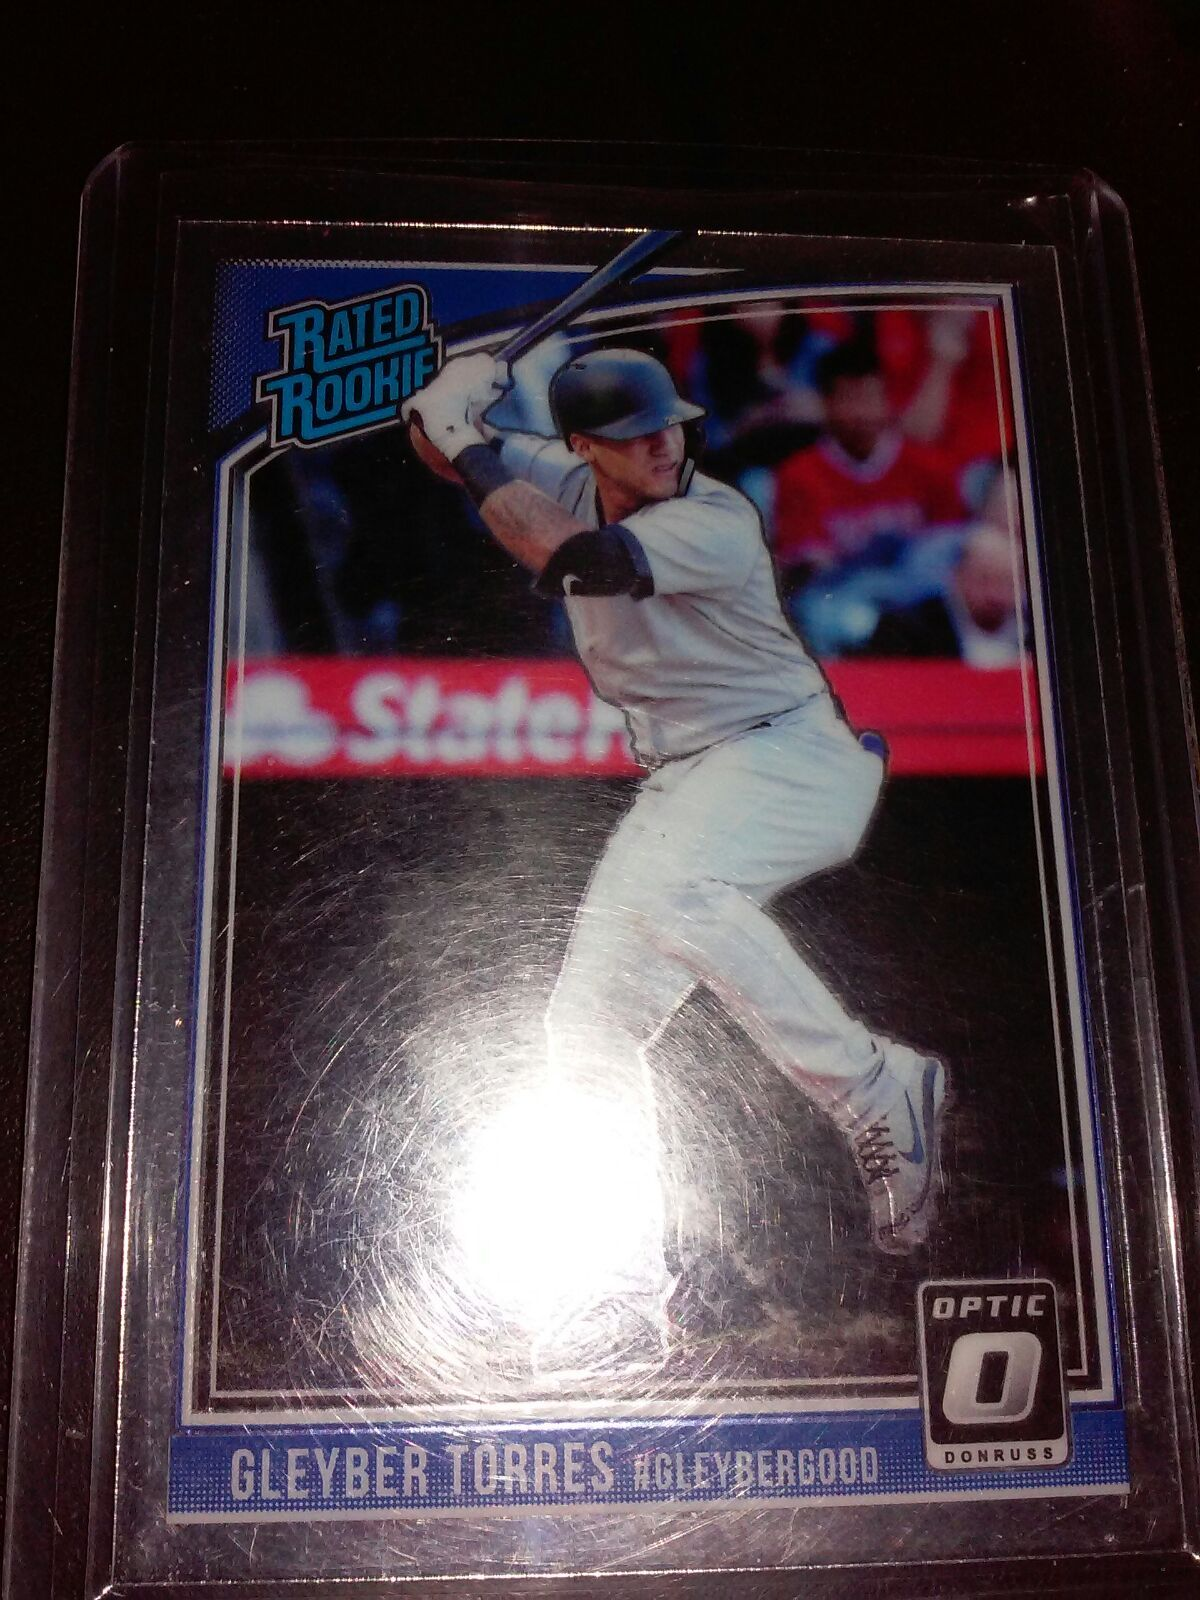 You Are Getting Exact Card S Pictured Nm Condition Cards With Free Shipping Will Be Shipped Pwe Securely In Penny Sleeve And Top Gleyber Torres S Pic Cards